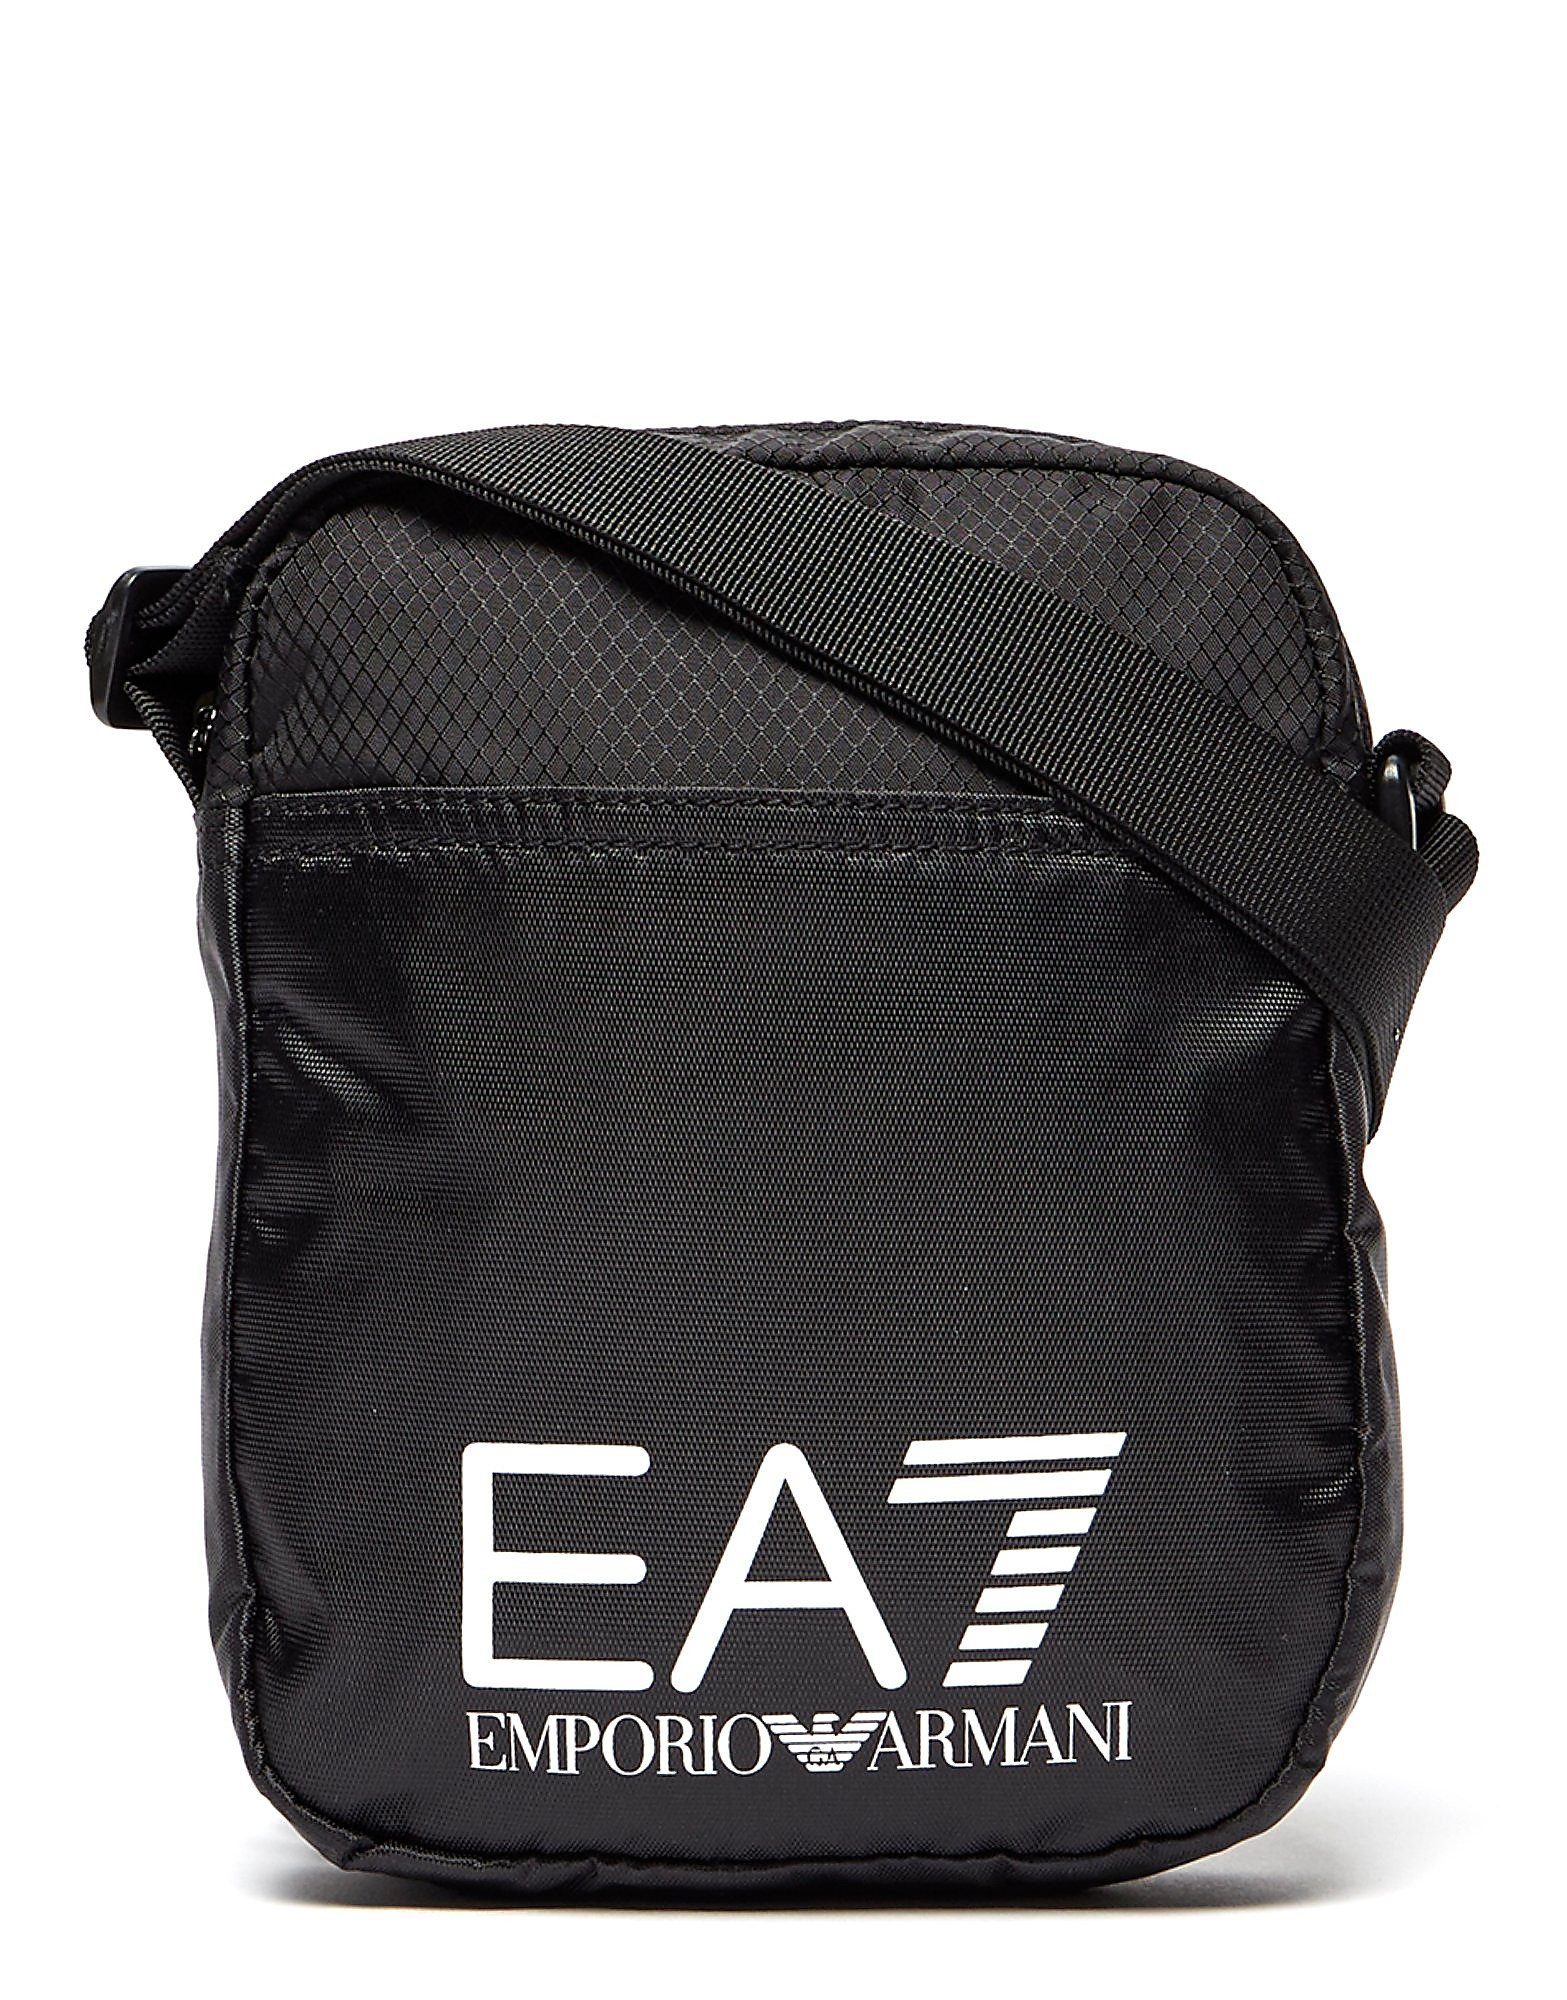 Emporio Armani EA7 Train Logo Borsellino